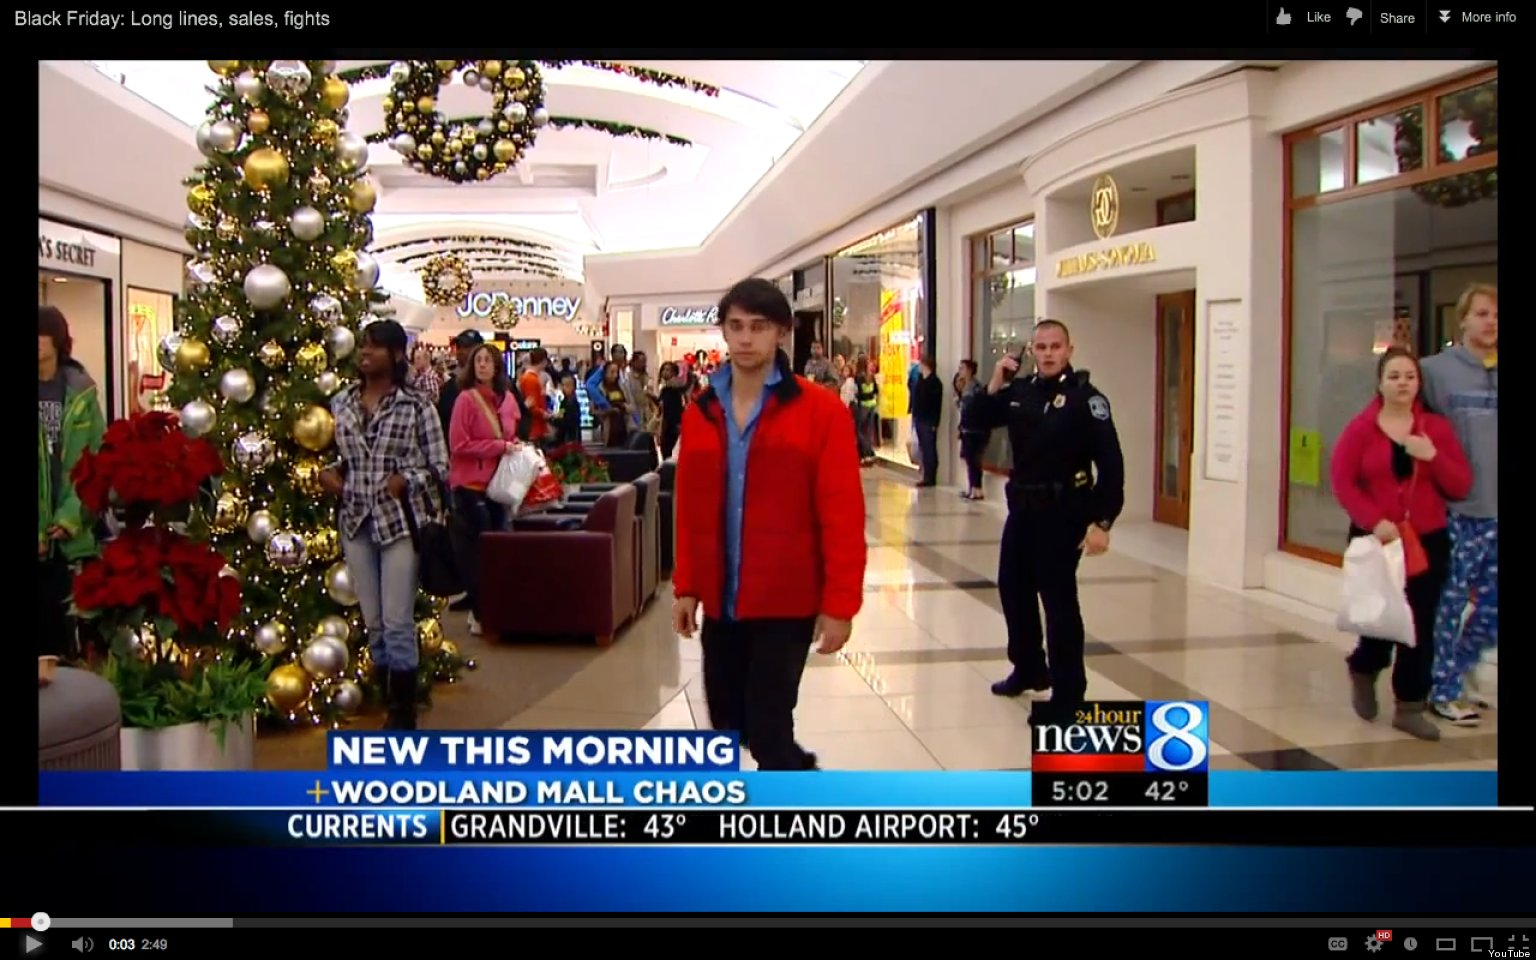 Black Friday Gang Fight At Woodland Mall Leads To Chaos